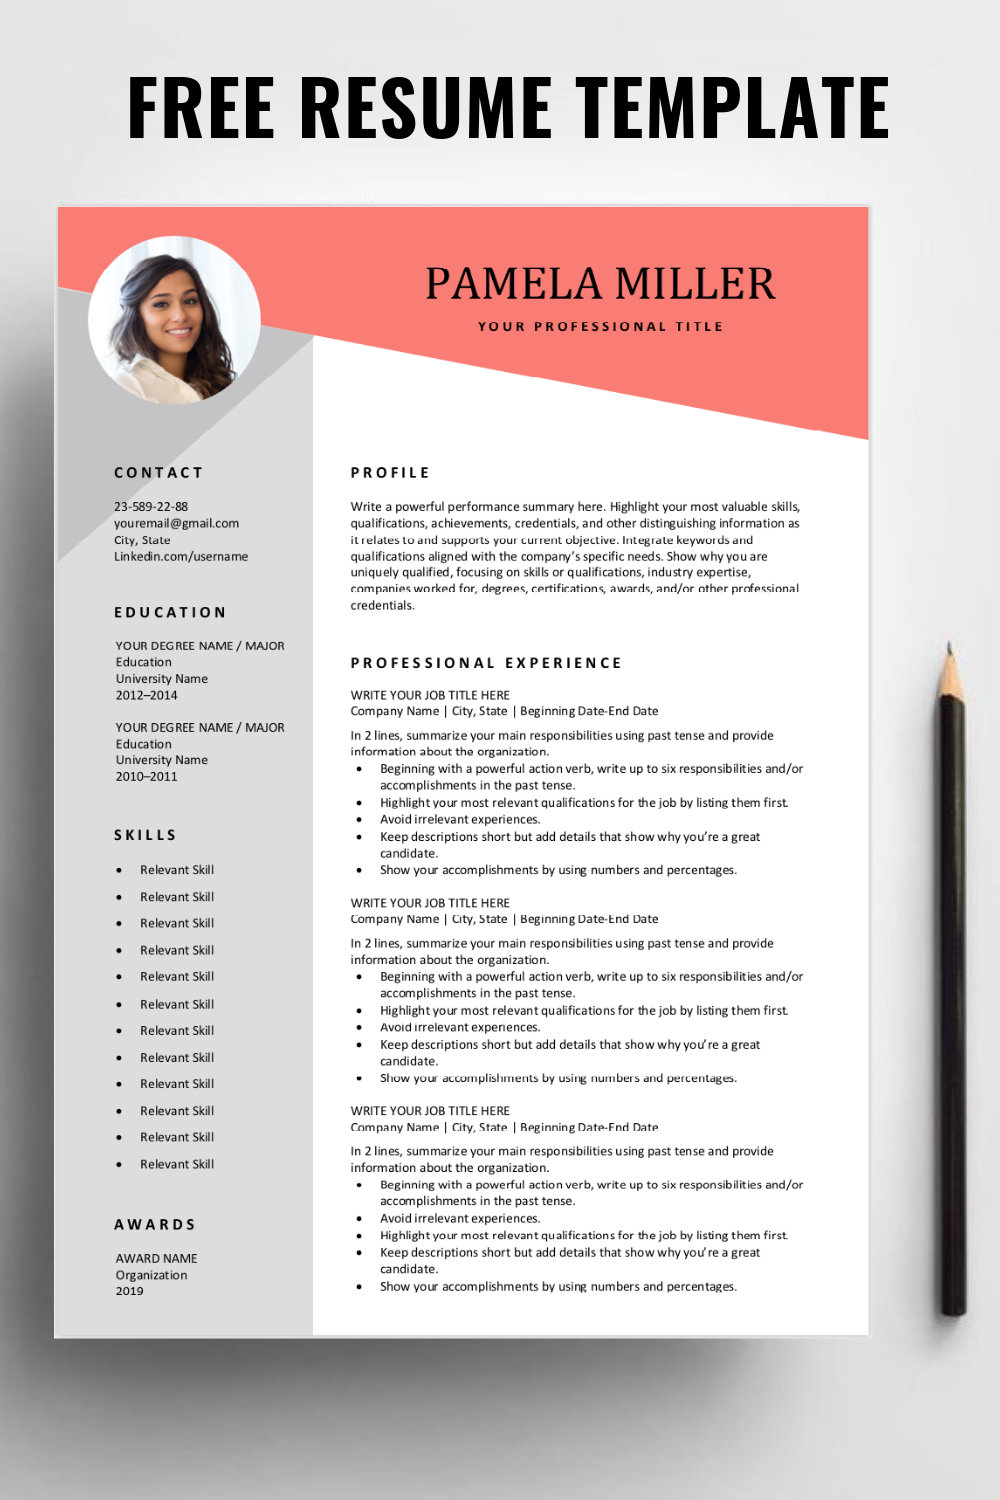 Free Resume Template In 2020 Resume Template Free Downloadable Resume Template Free Resume Template Download